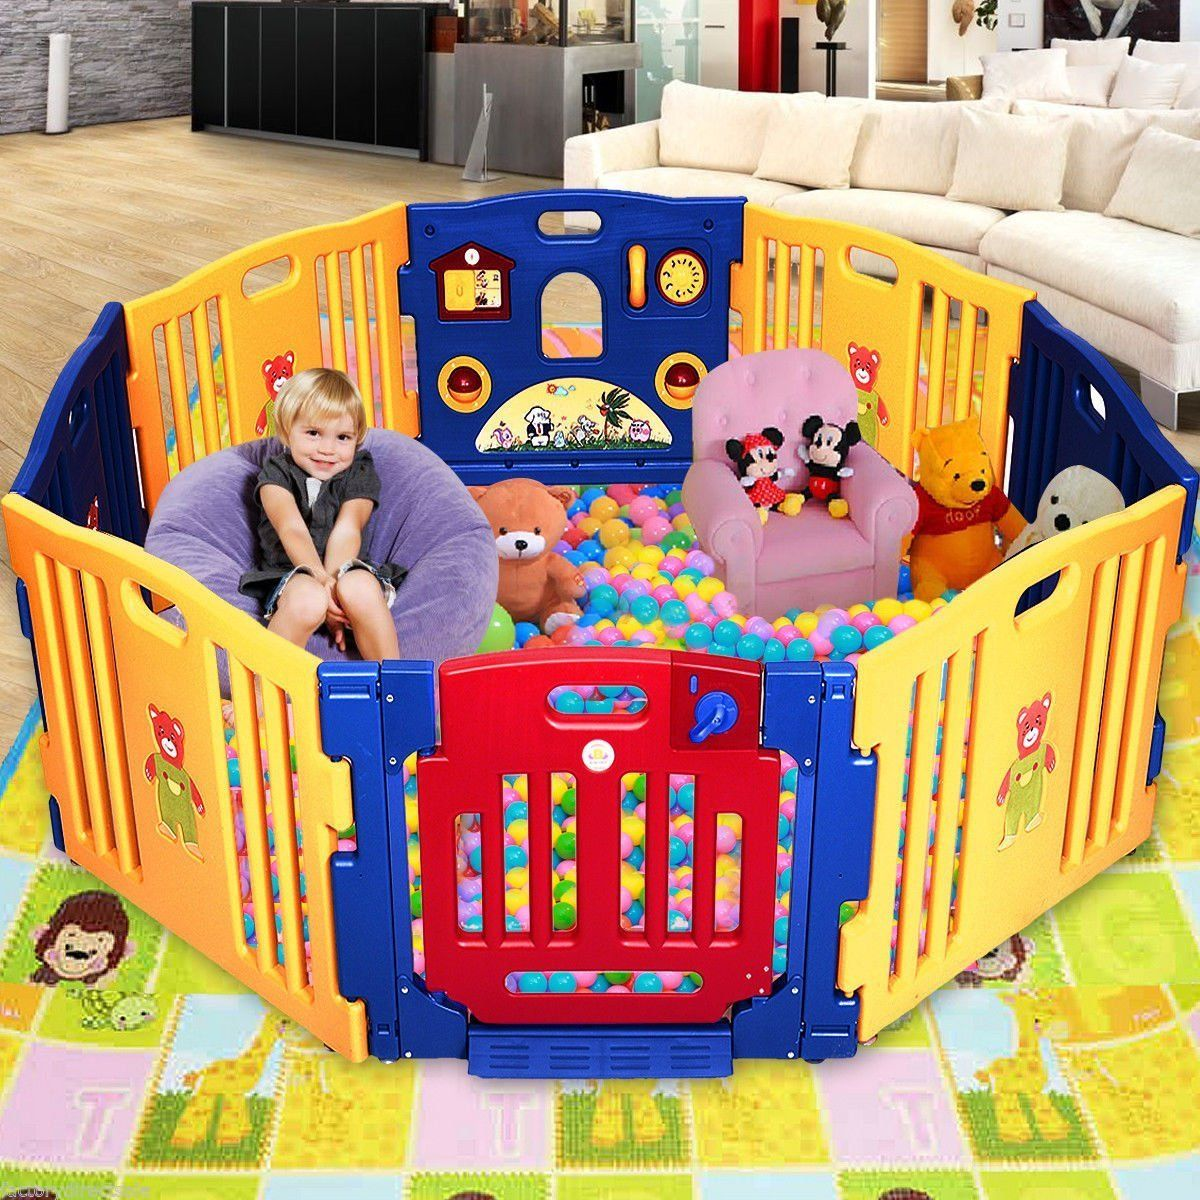 Baby Play Area Giantex 8 Panel Play Center Safety Yard Pen Baby Kids Playpen